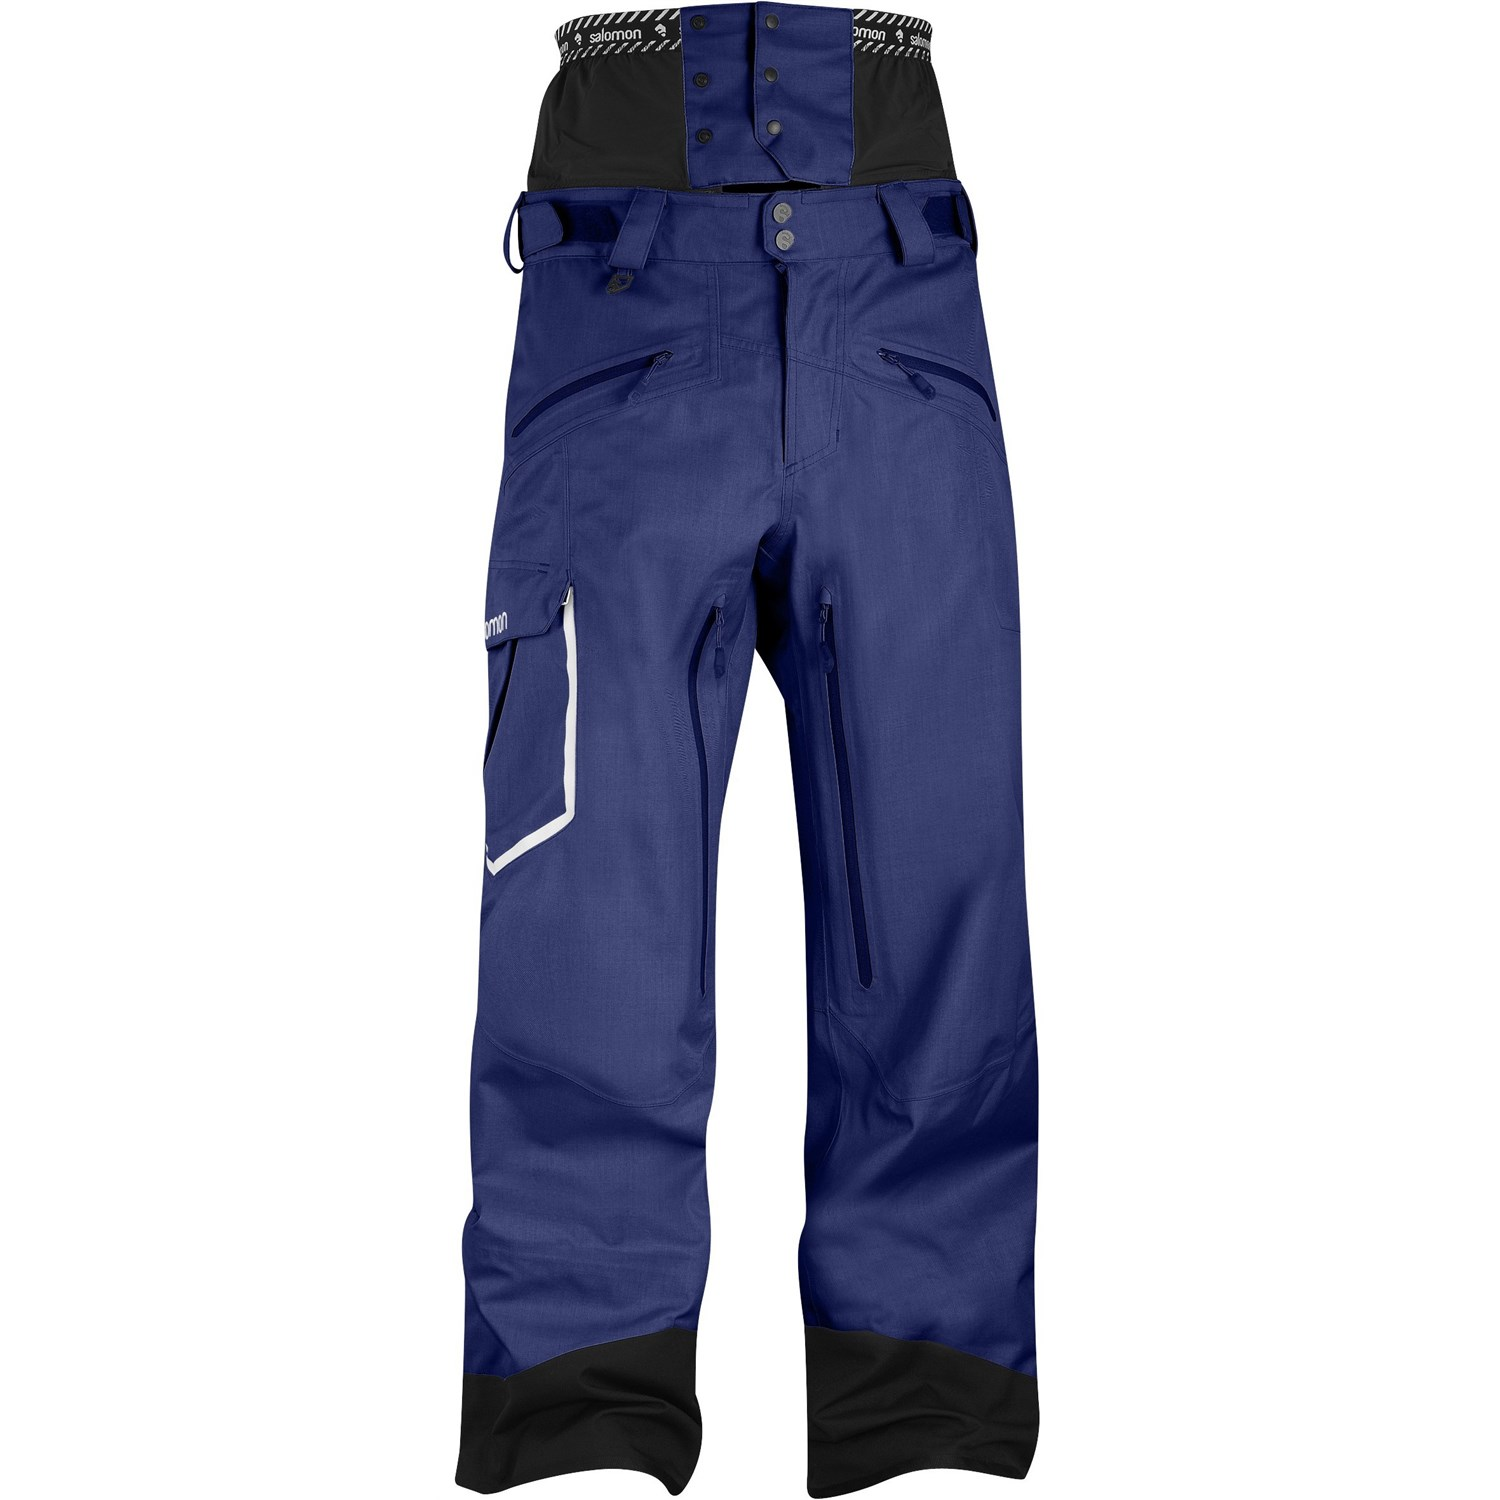 lace up in detailed pictures where can i buy Salomon Sideways II Pants